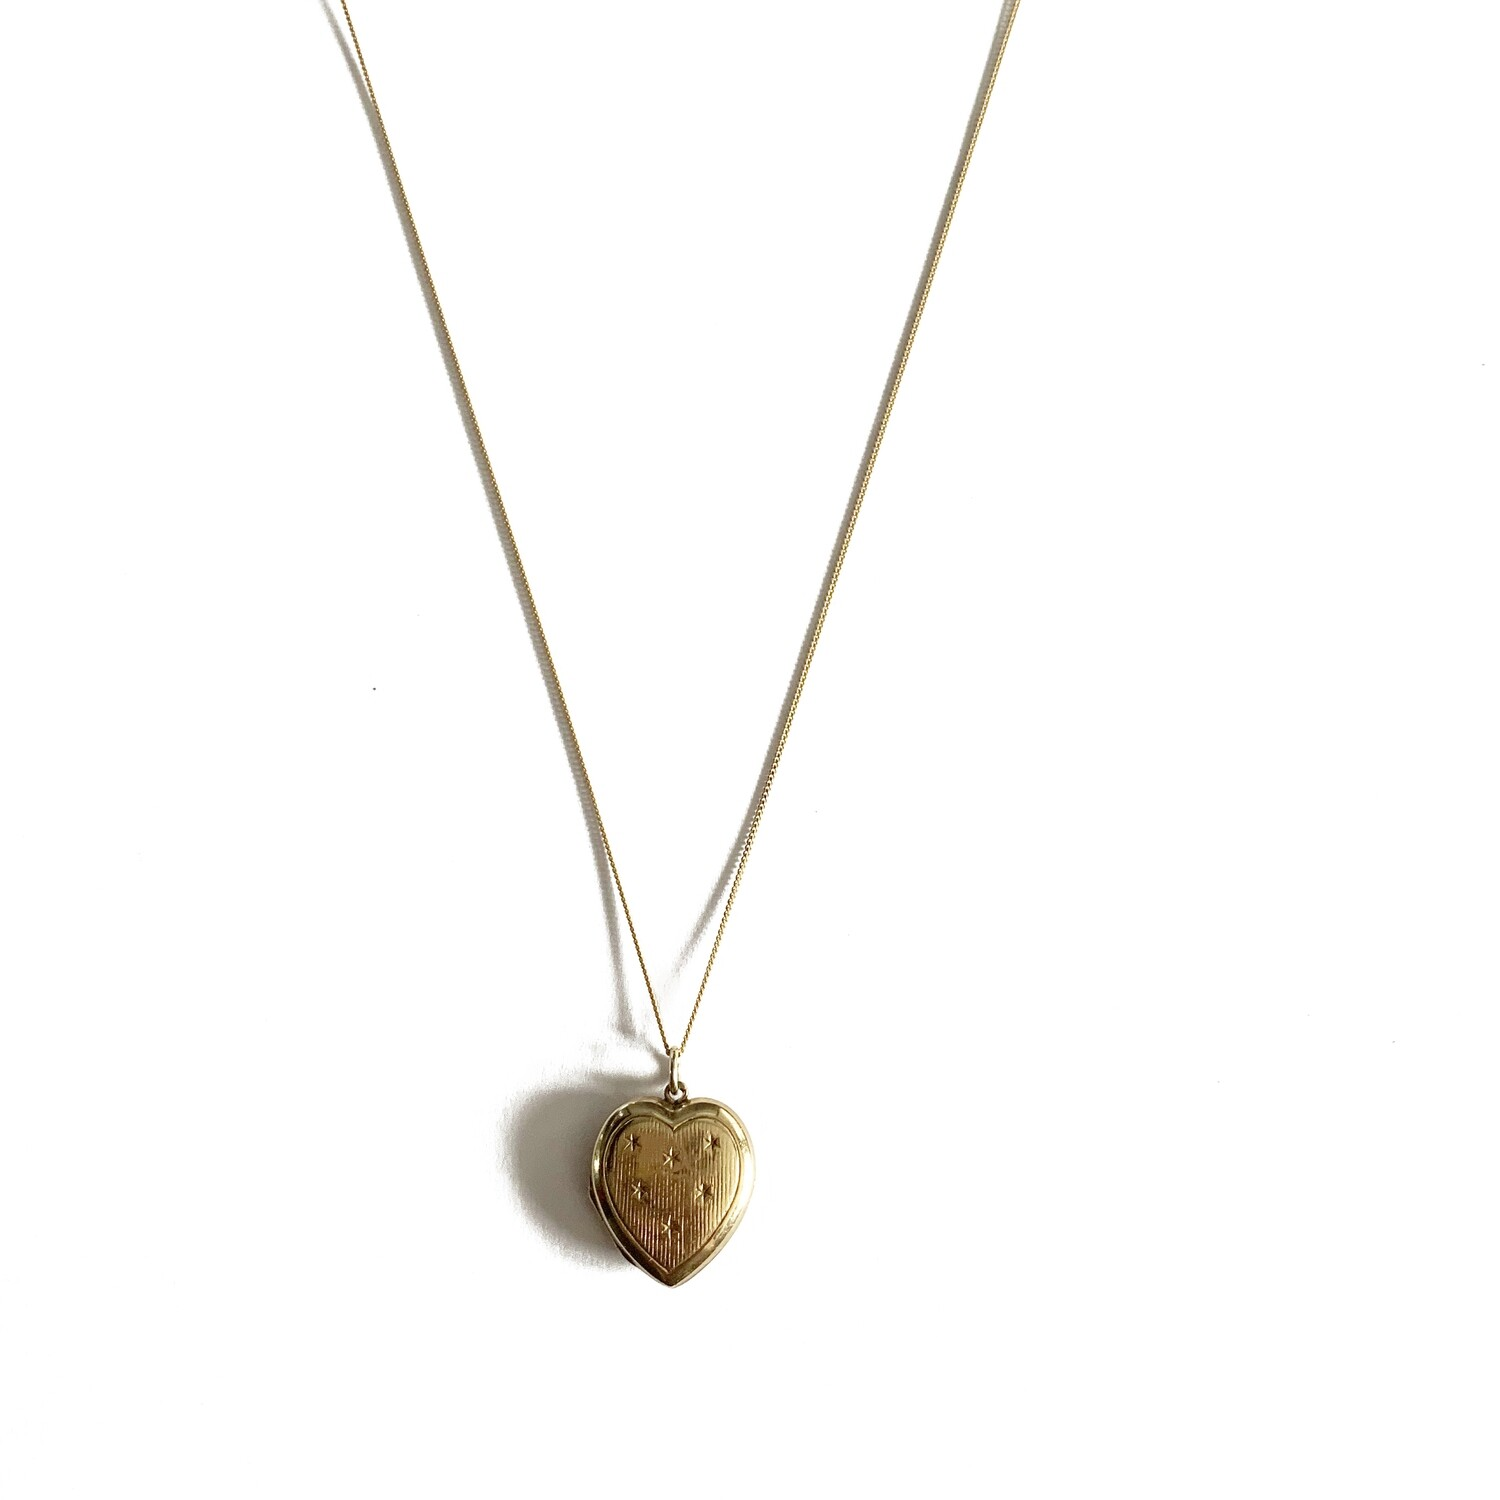 Circa 1915 Gold Locket